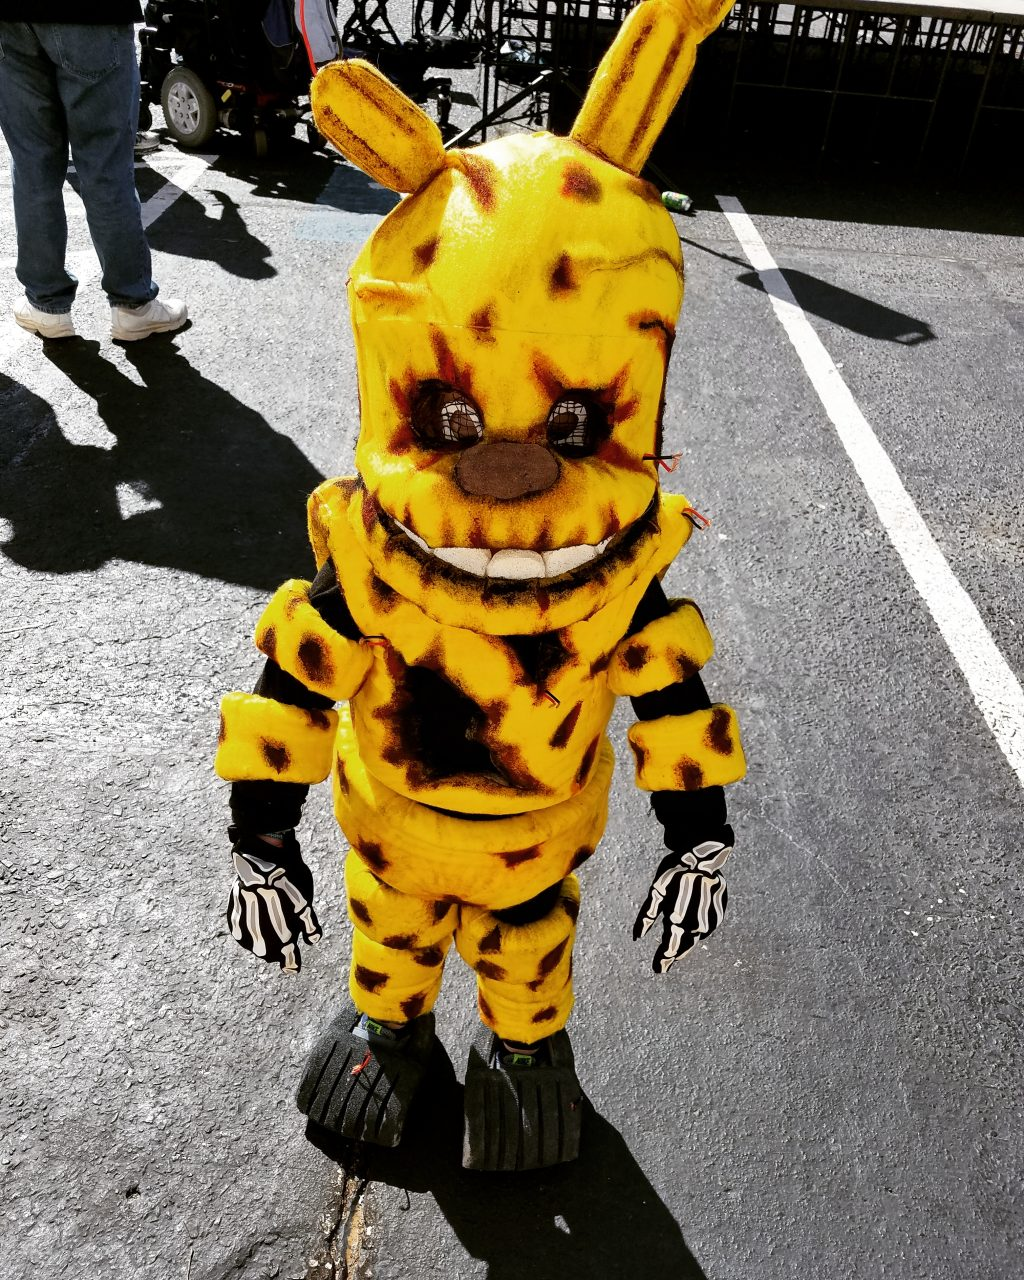 springtrap five nights at freddys costume